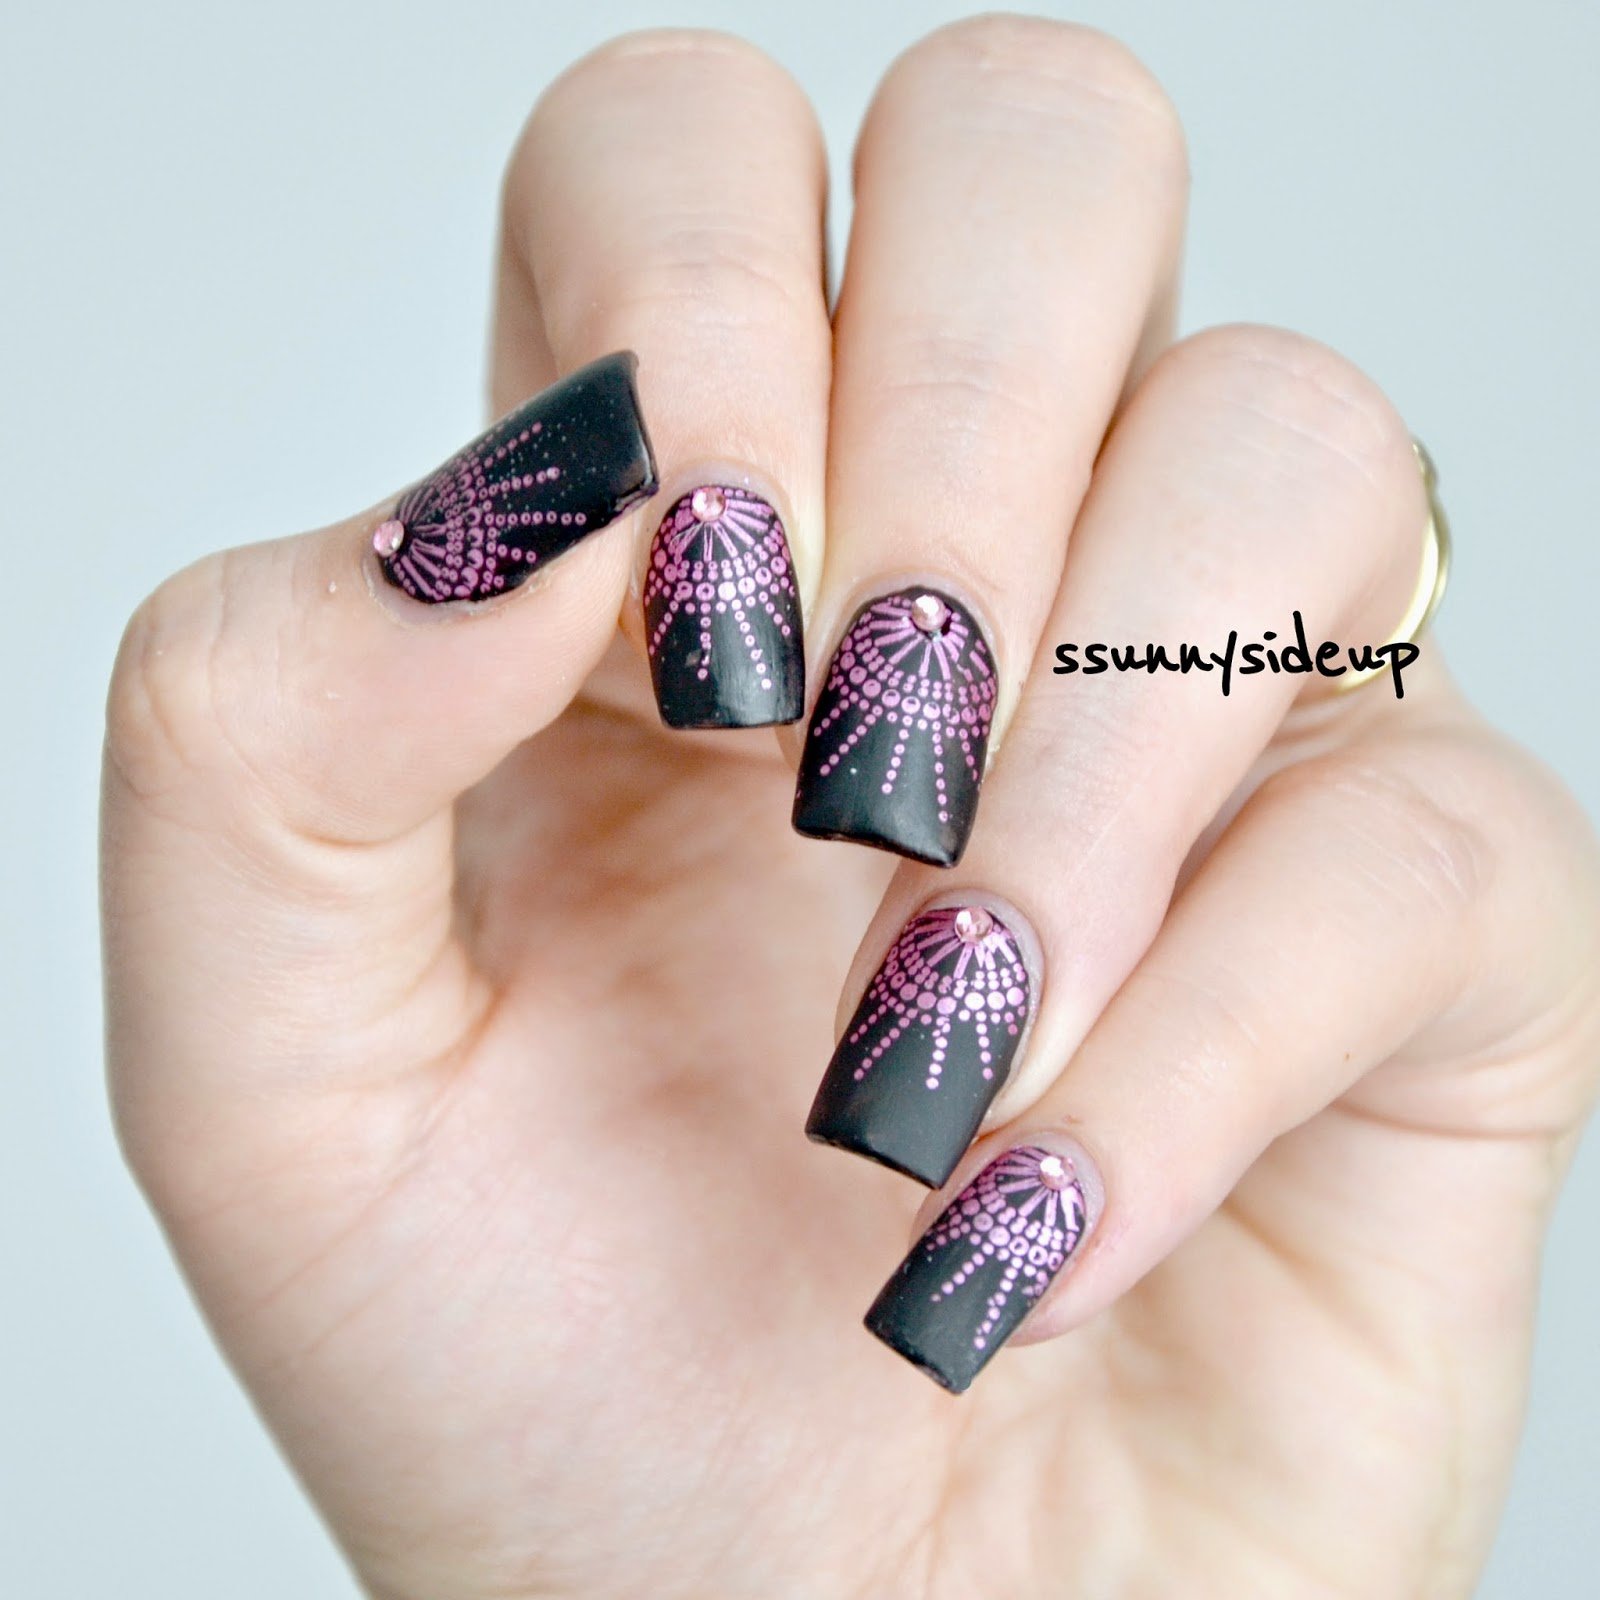 ssunnysideup: Black matte nails with chrome stamping